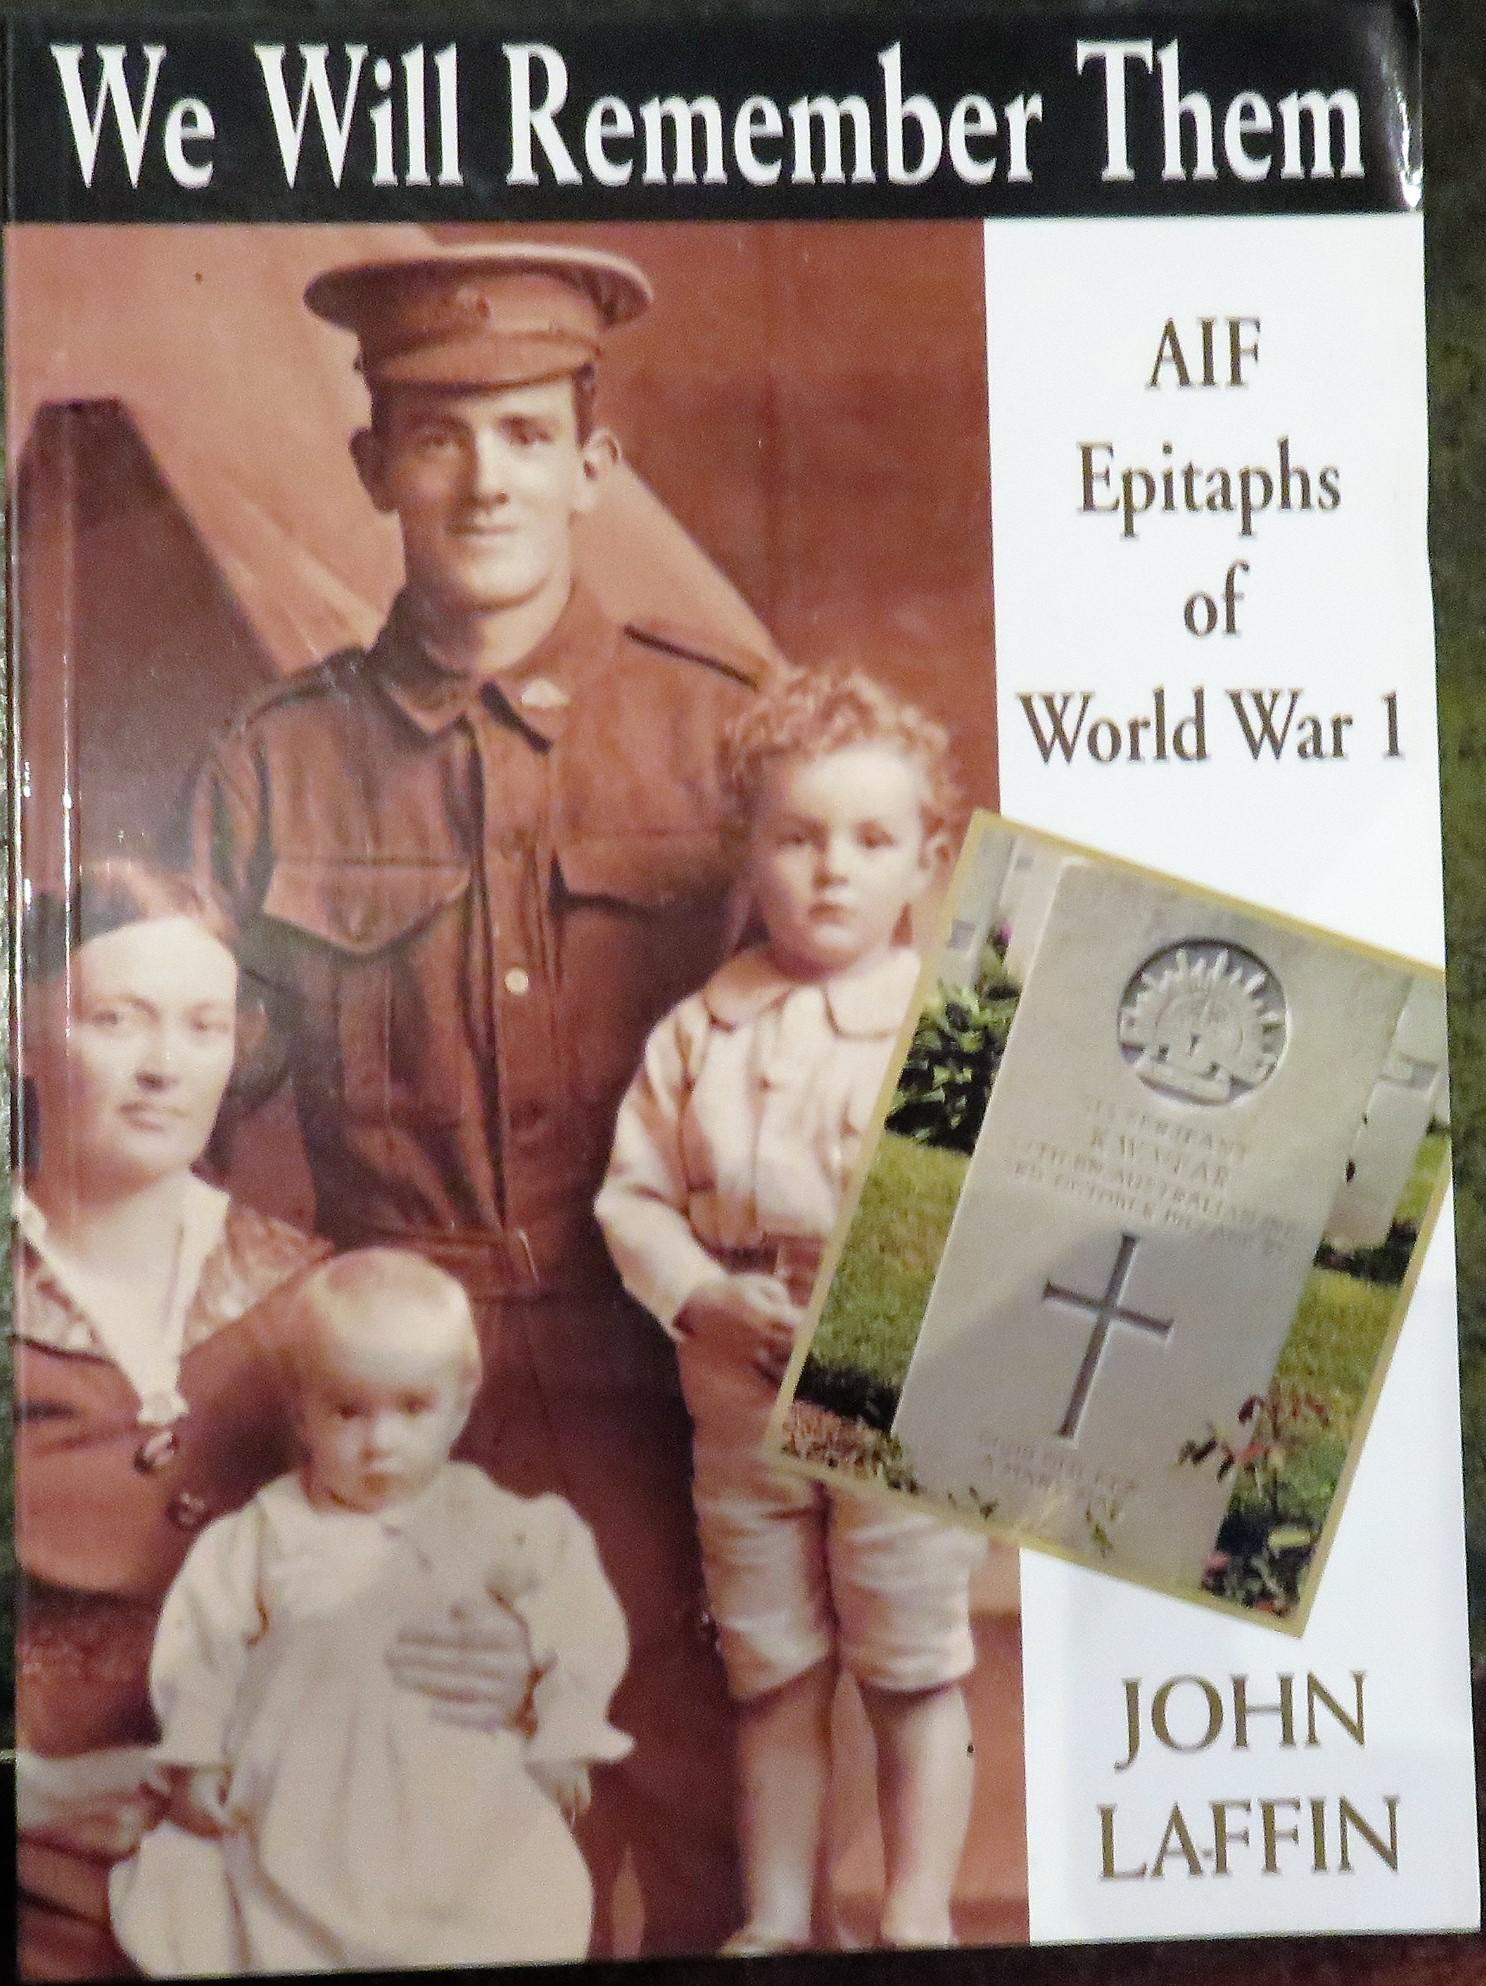 We will remember them AIF Epitaphs of WW1.